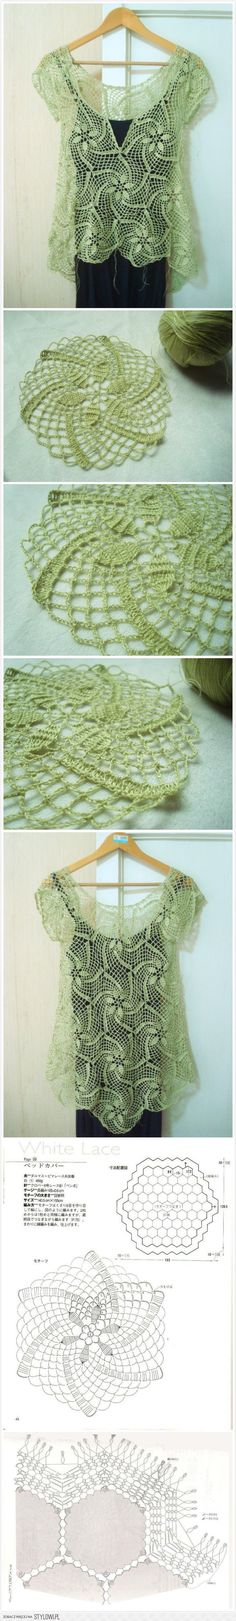 Really nice dreen lace sharing with you with schemas please check it you will like. Débardeurs Au Crochet, Gilet Crochet, Form Crochet, Crochet Shirt, Crochet Woman, Crochet Squares, Thread Crochet, Irish Crochet, Crochet Stitches